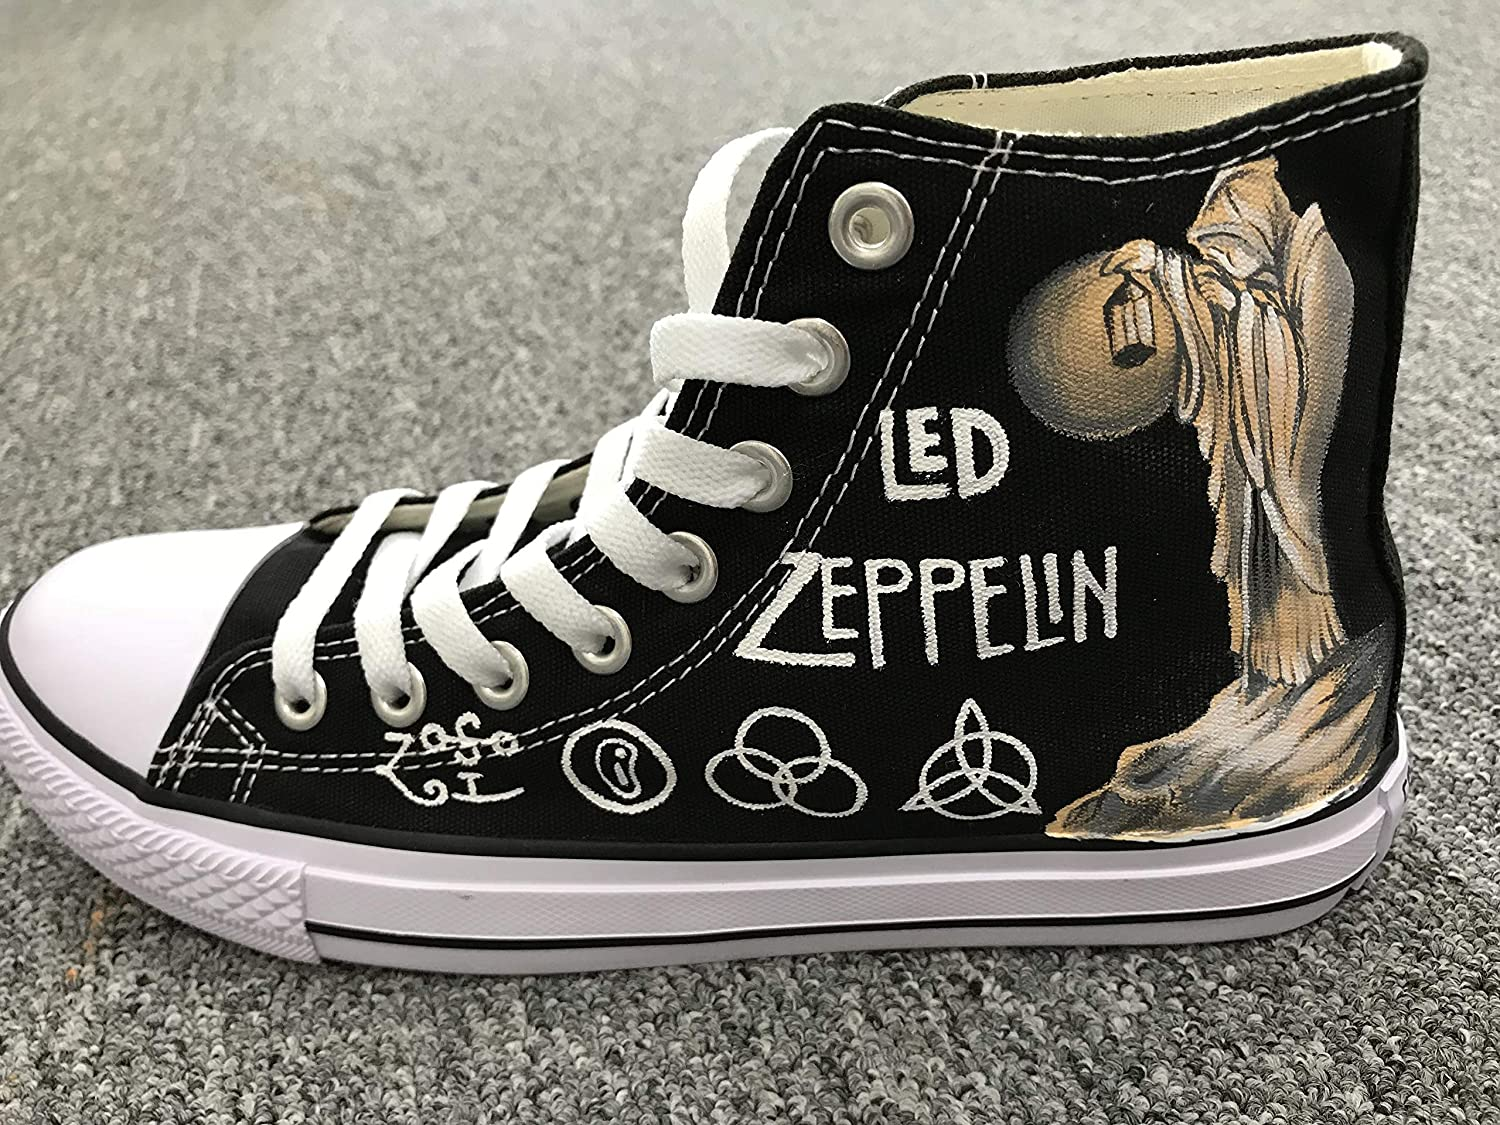 28ec30f98a9 Amazon.com  Men Women Sneakers Led Zeppelin Jimmy Page Hand Painted Shoes  Custom Sneakers Free Shipping  Handmade